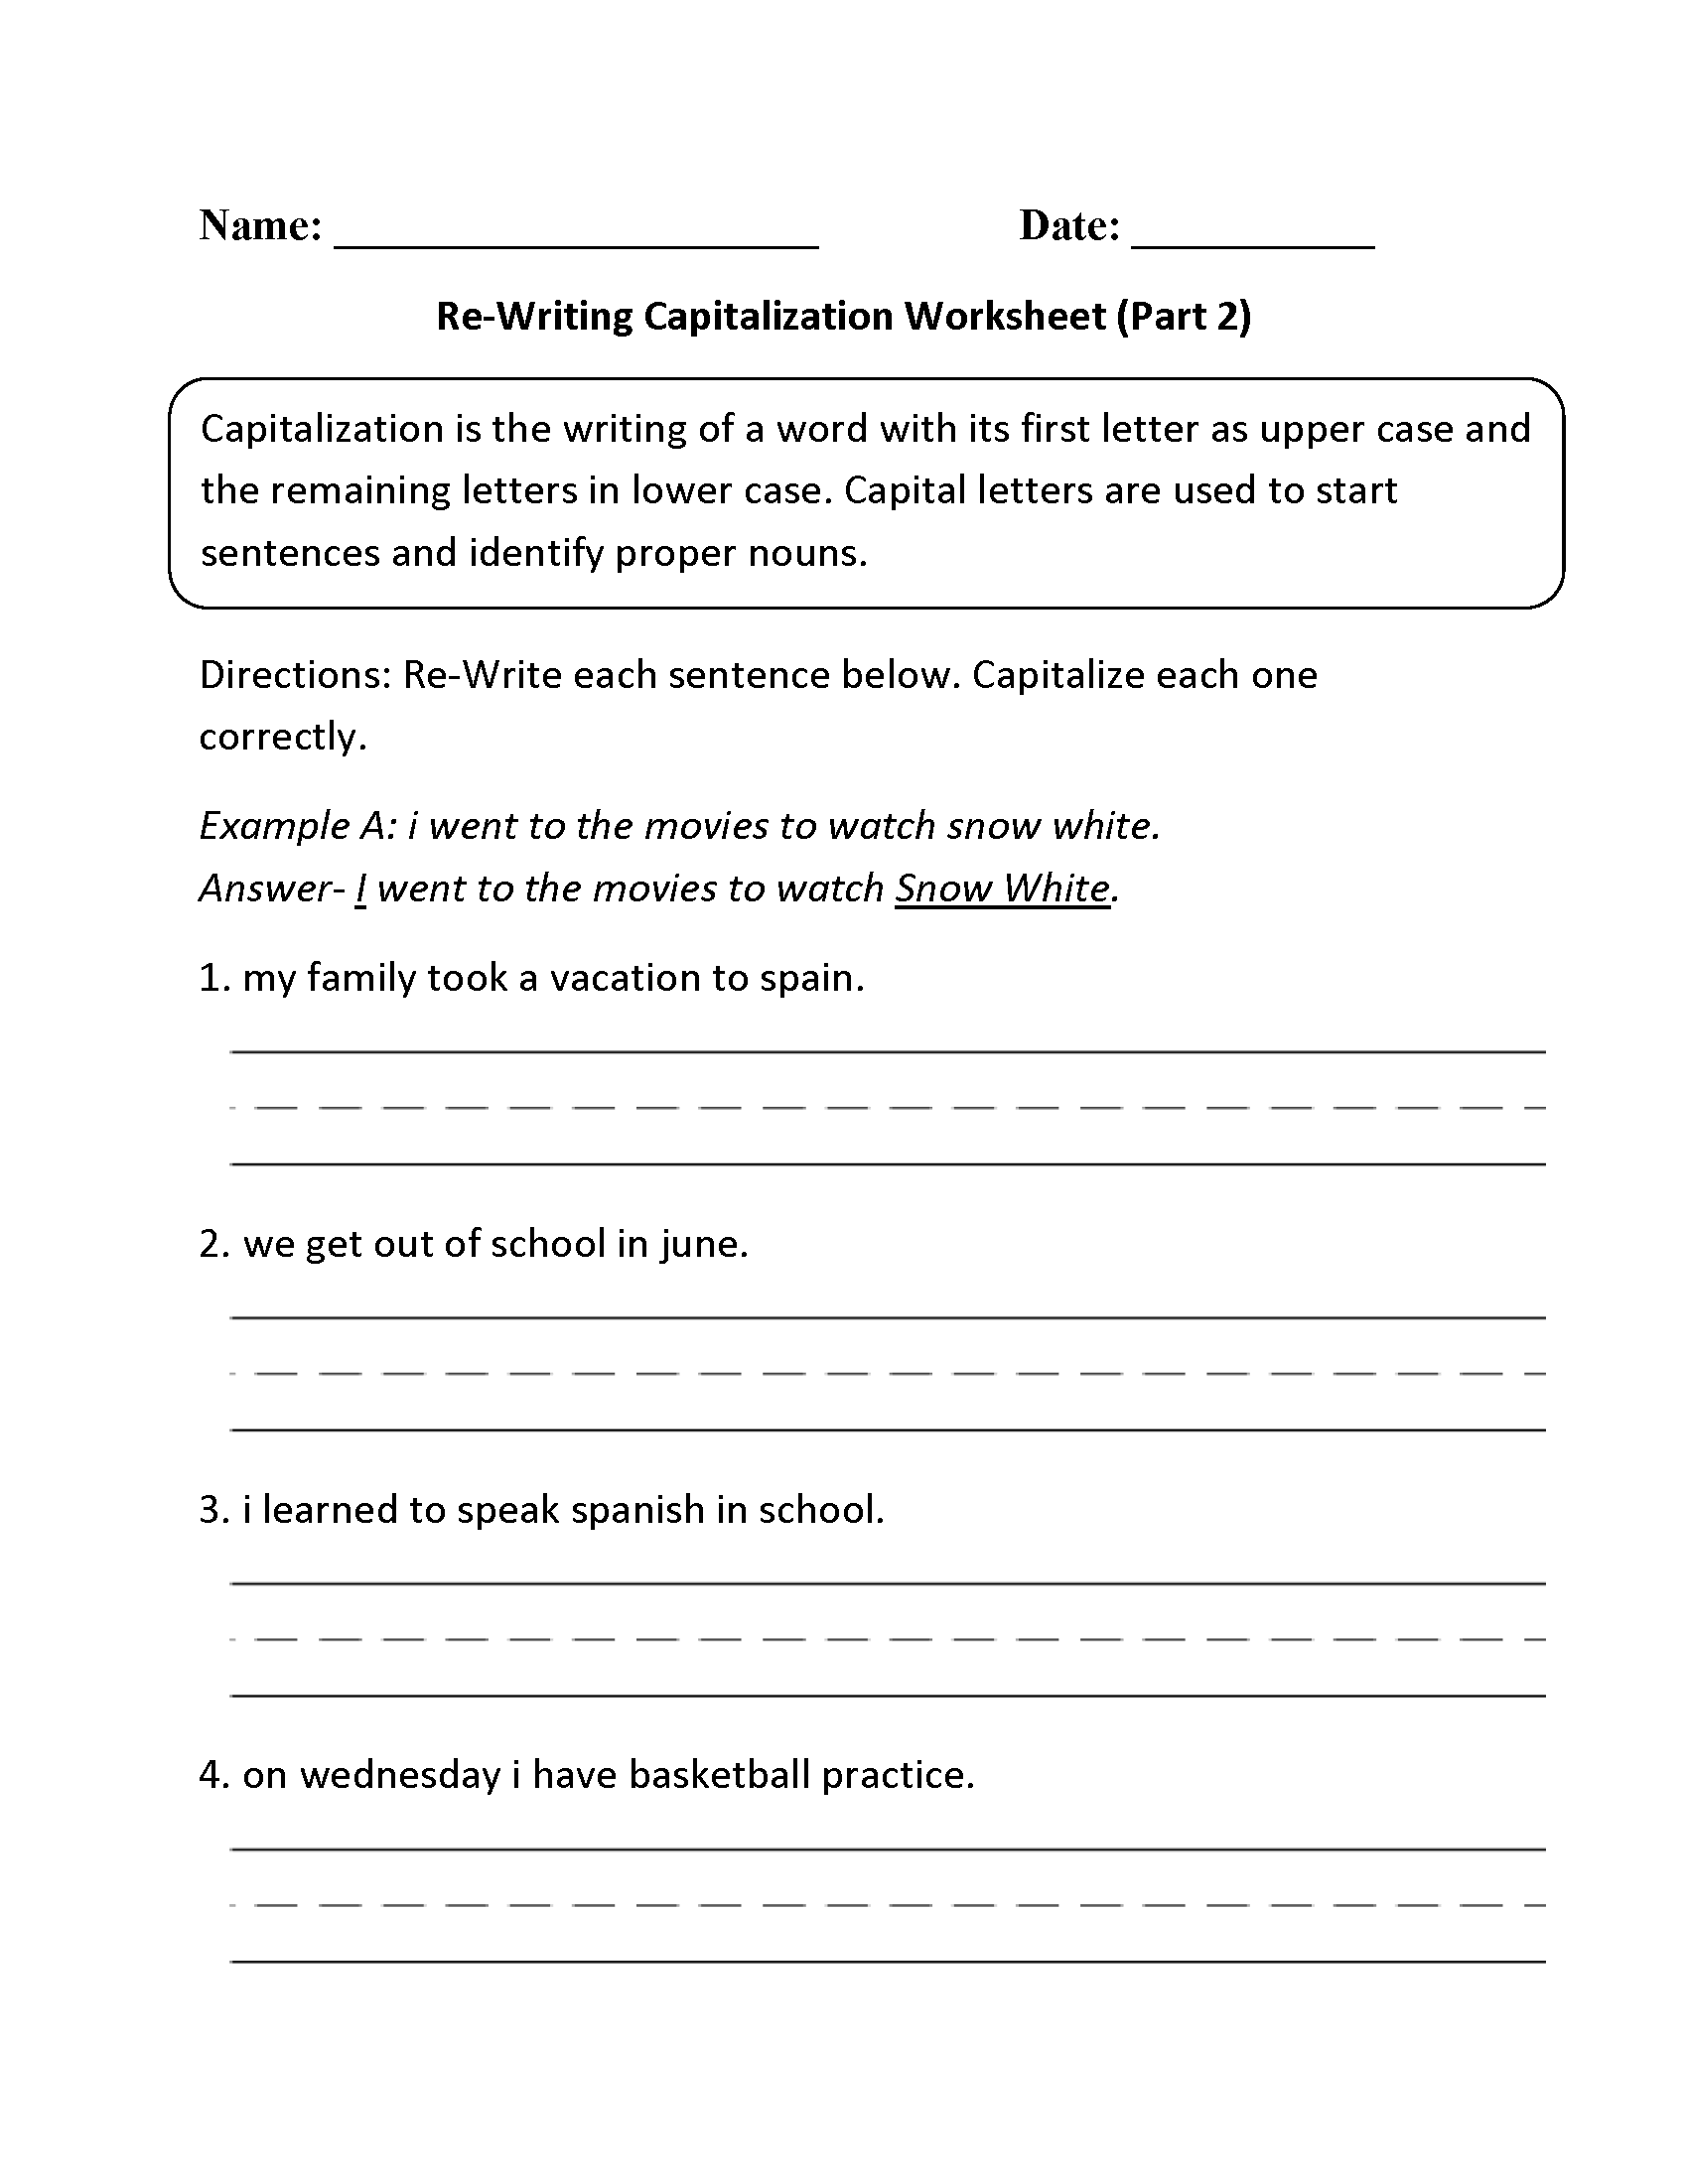 Englishlinx capitalization worksheets worksheet part 2 spiritdancerdesigns